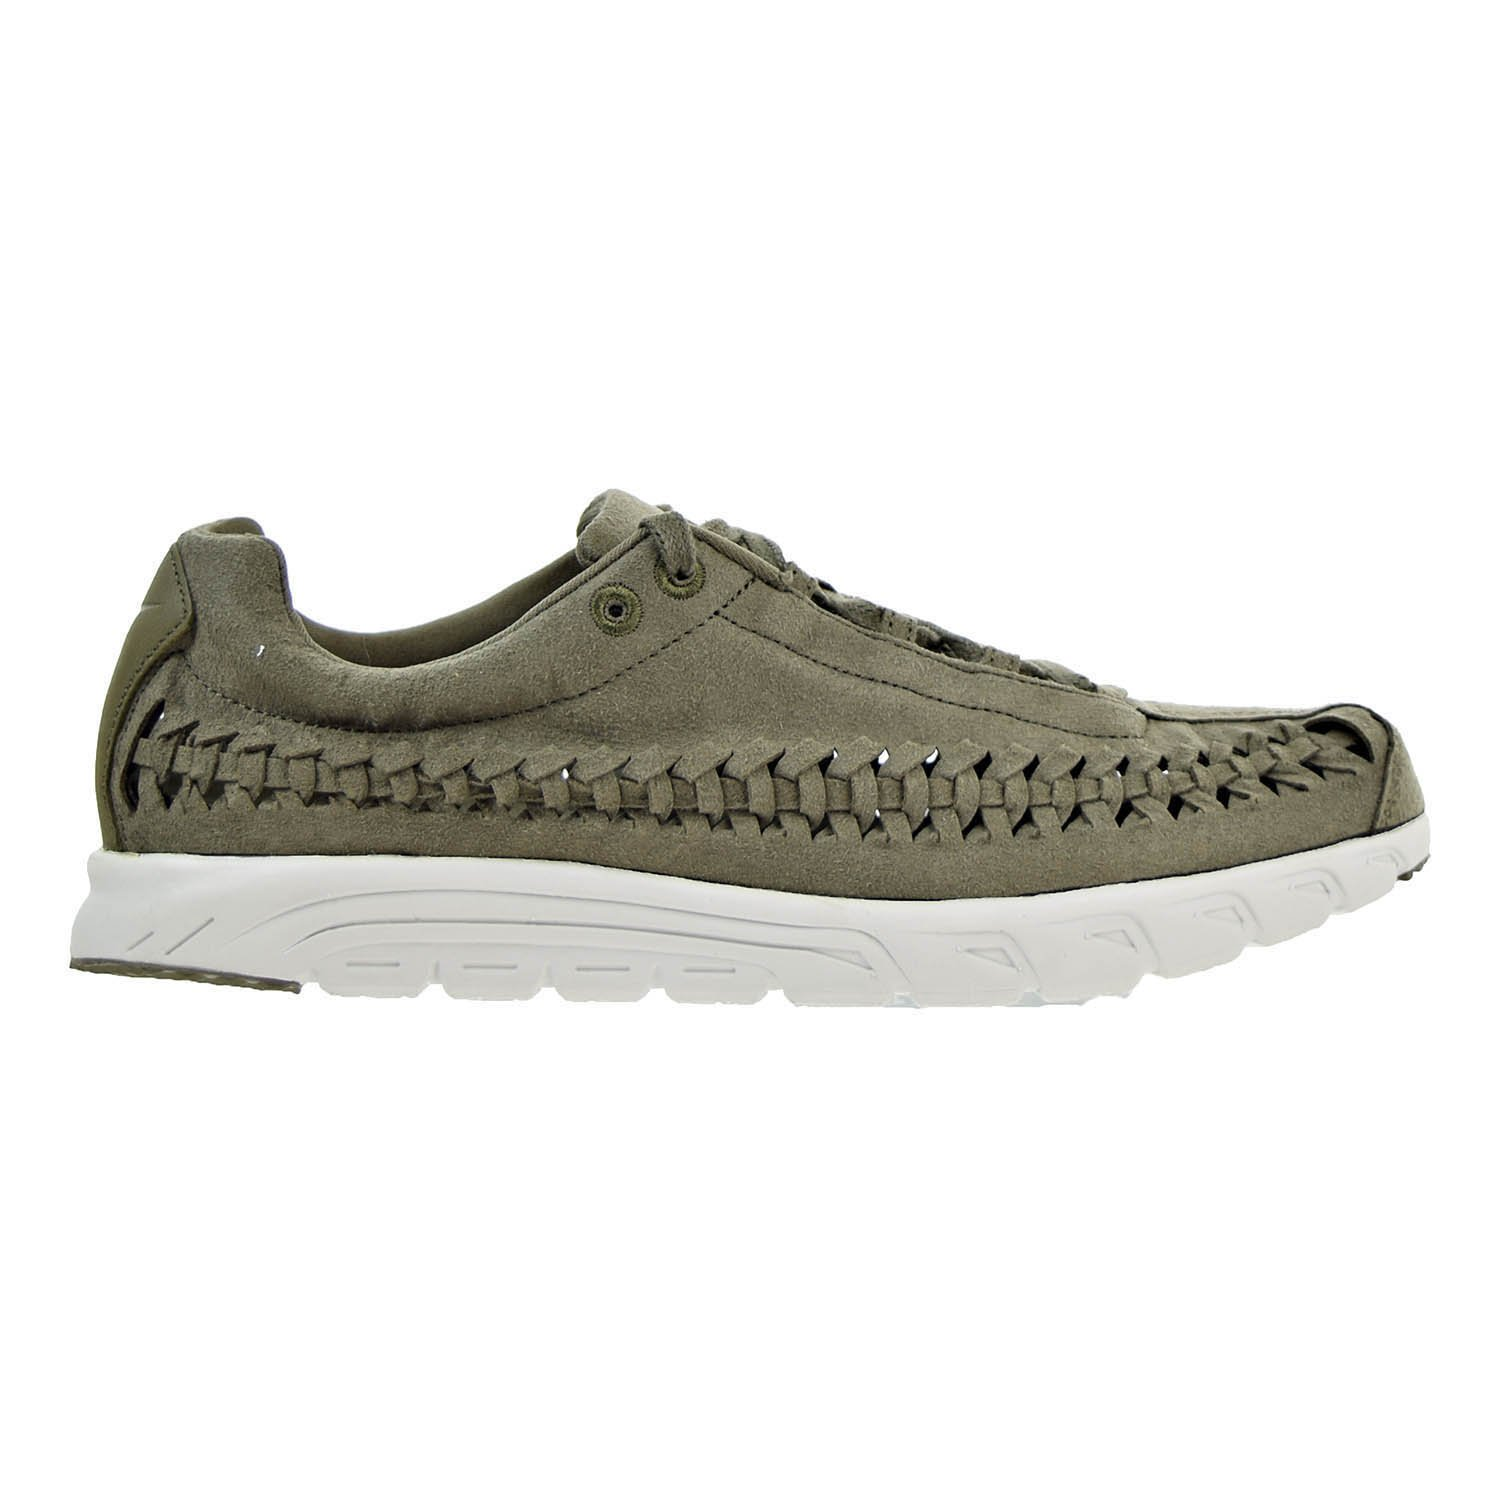 NIKE Men's Mayfly Woven Casual Shoe B071RTRN4T 10.5 D(M) US|Medium Olive/Light Bone-black